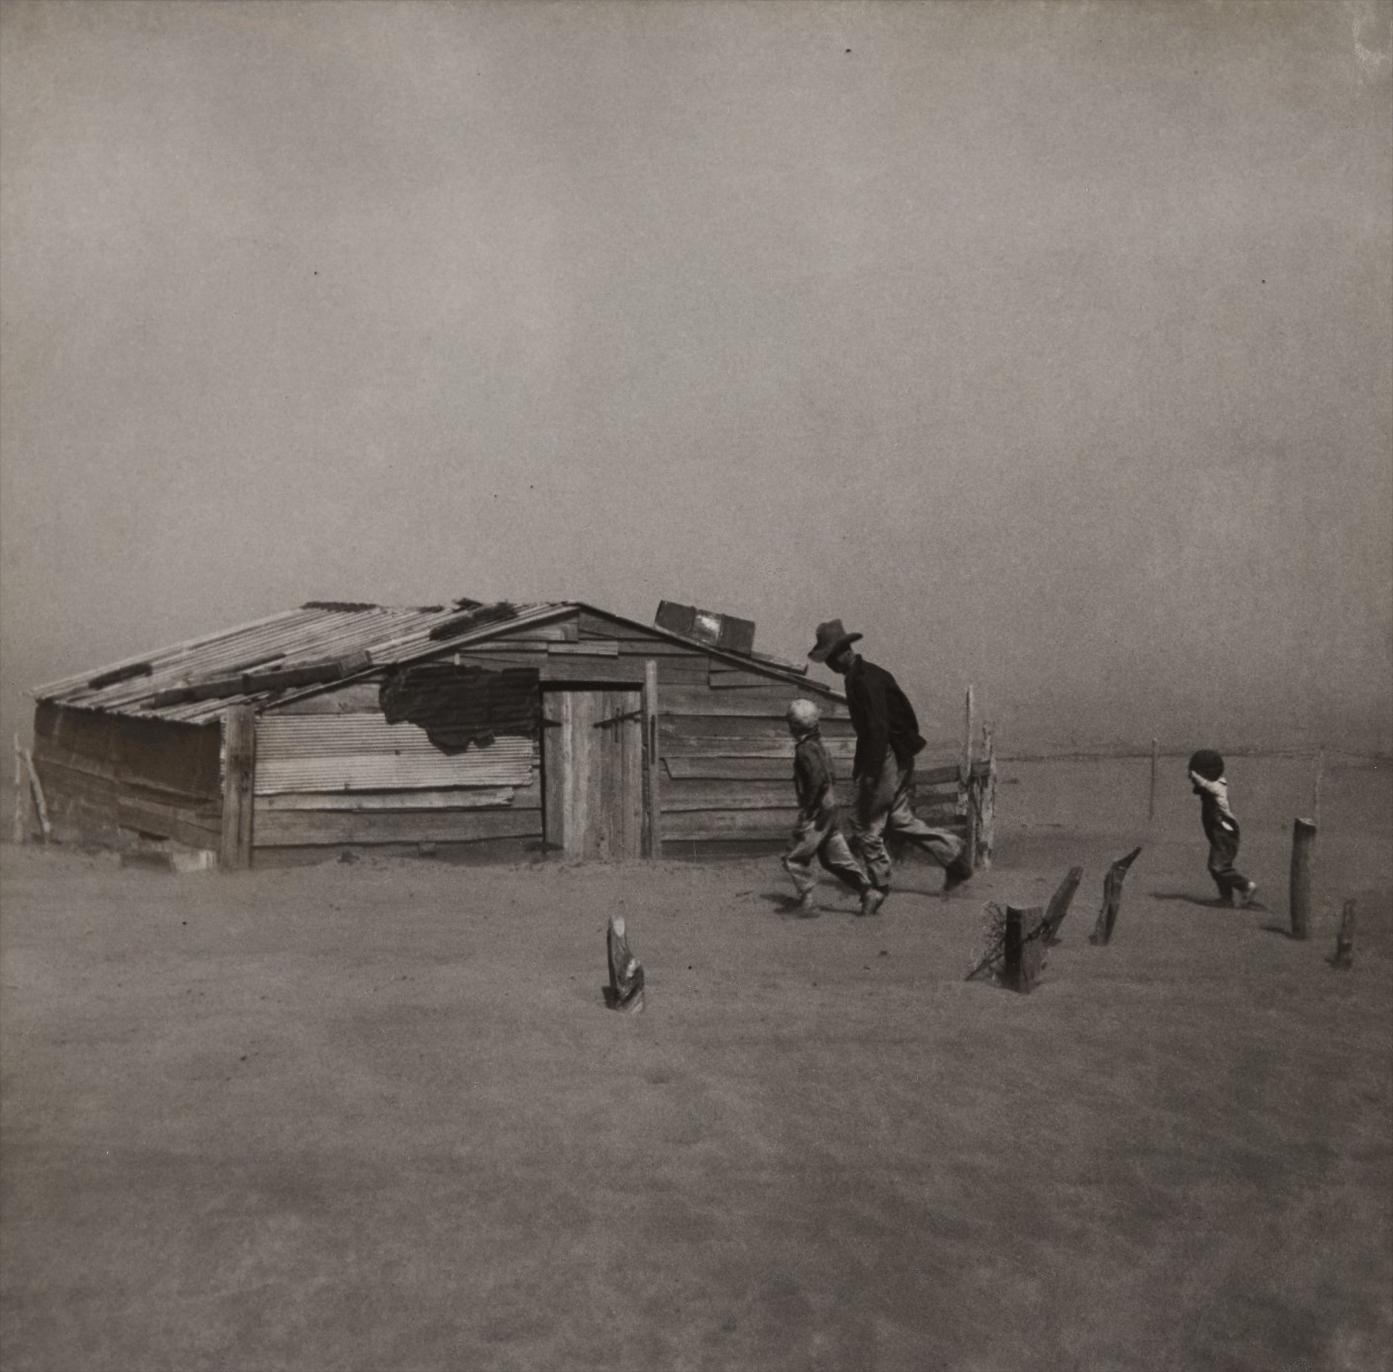 Arthur Rothstein - Farmer And Sons Walking In The Face Of A Dust Storm, Cimarron County, Oklahoma-1936